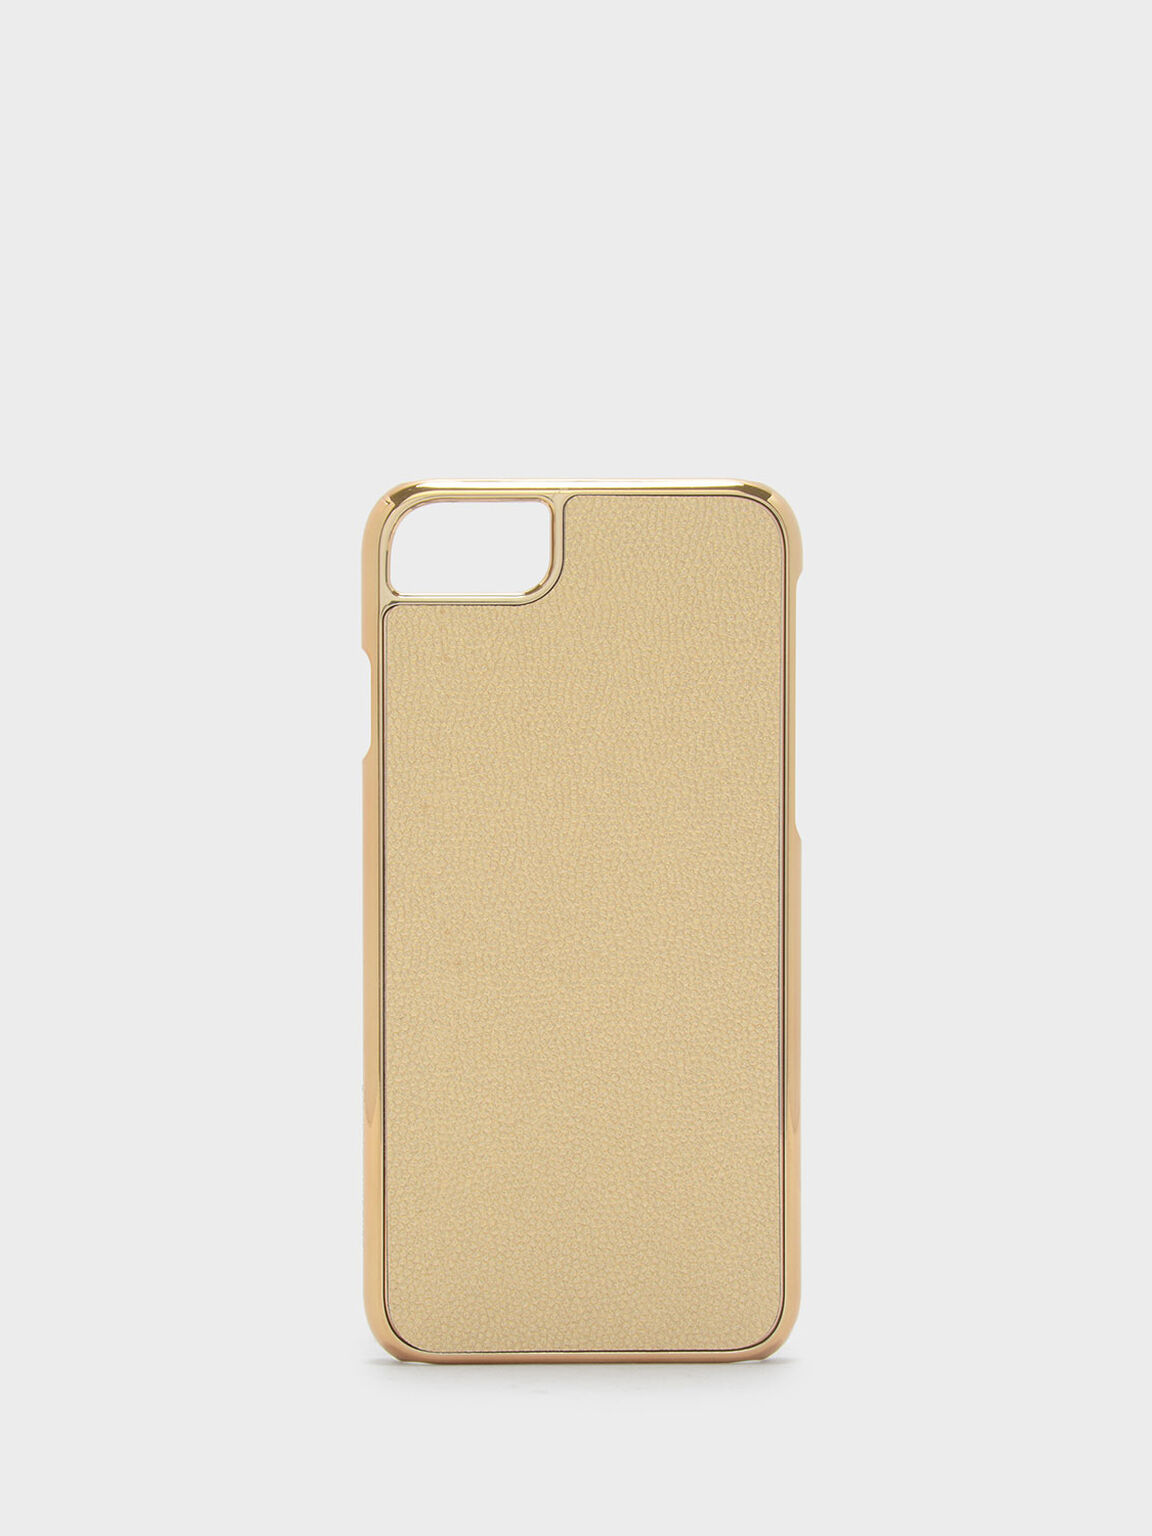 iPhone 7/8 Textured Case, Gold, hi-res